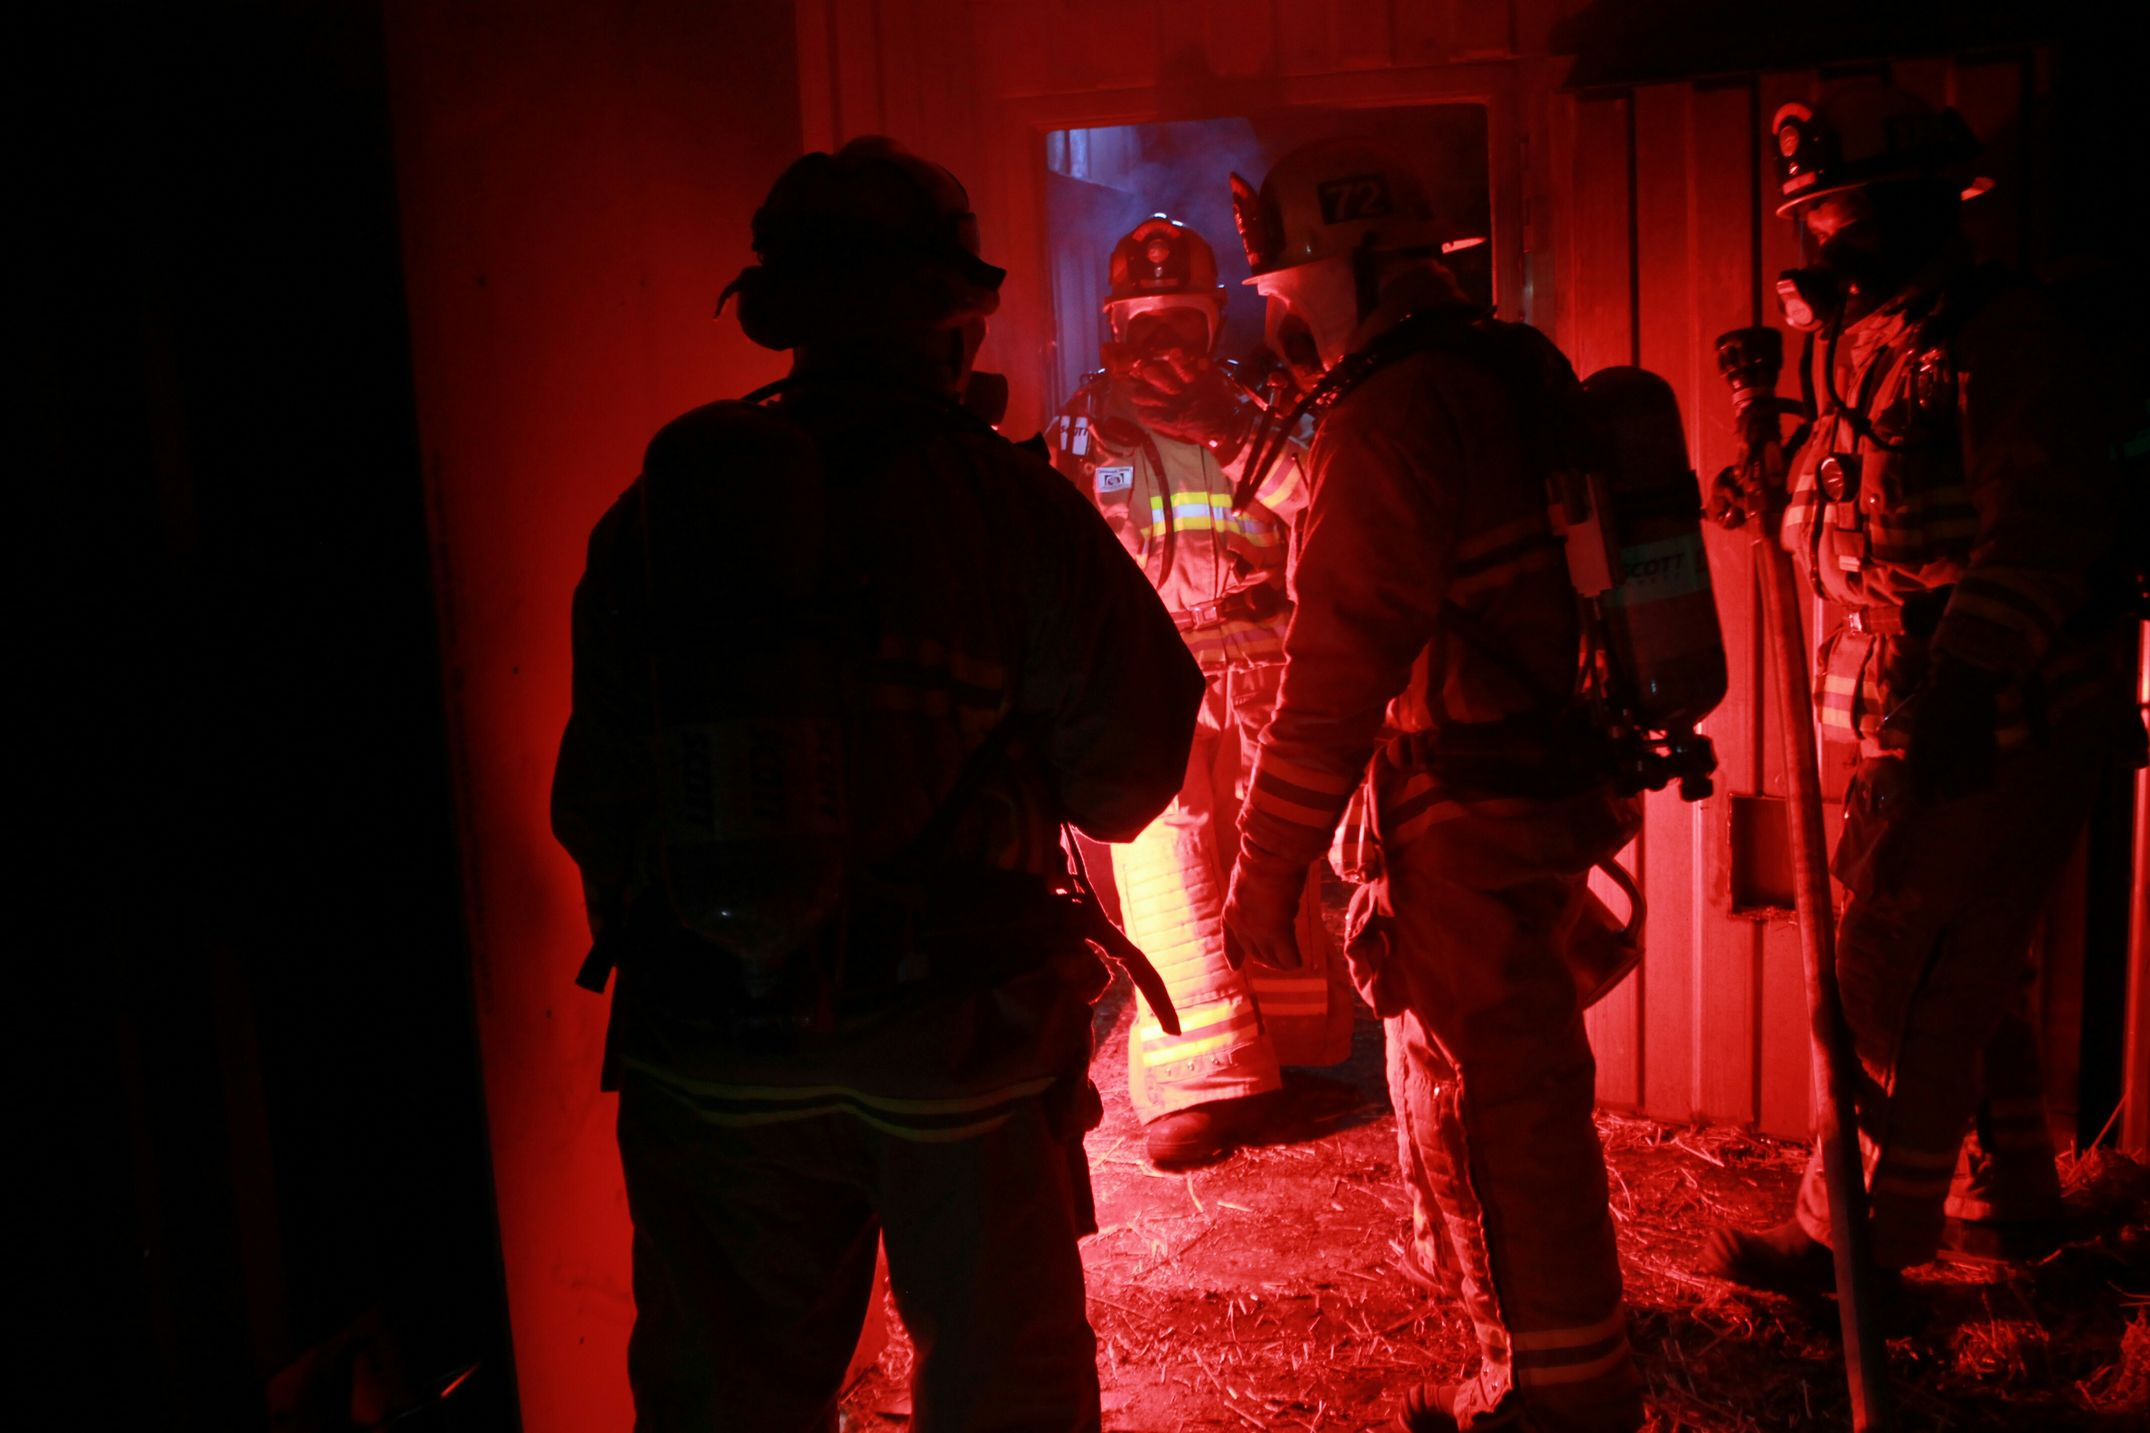 FirehouseFire And Flames Attack Firefighter Fire Helmets Turnouts Laddercompany 911